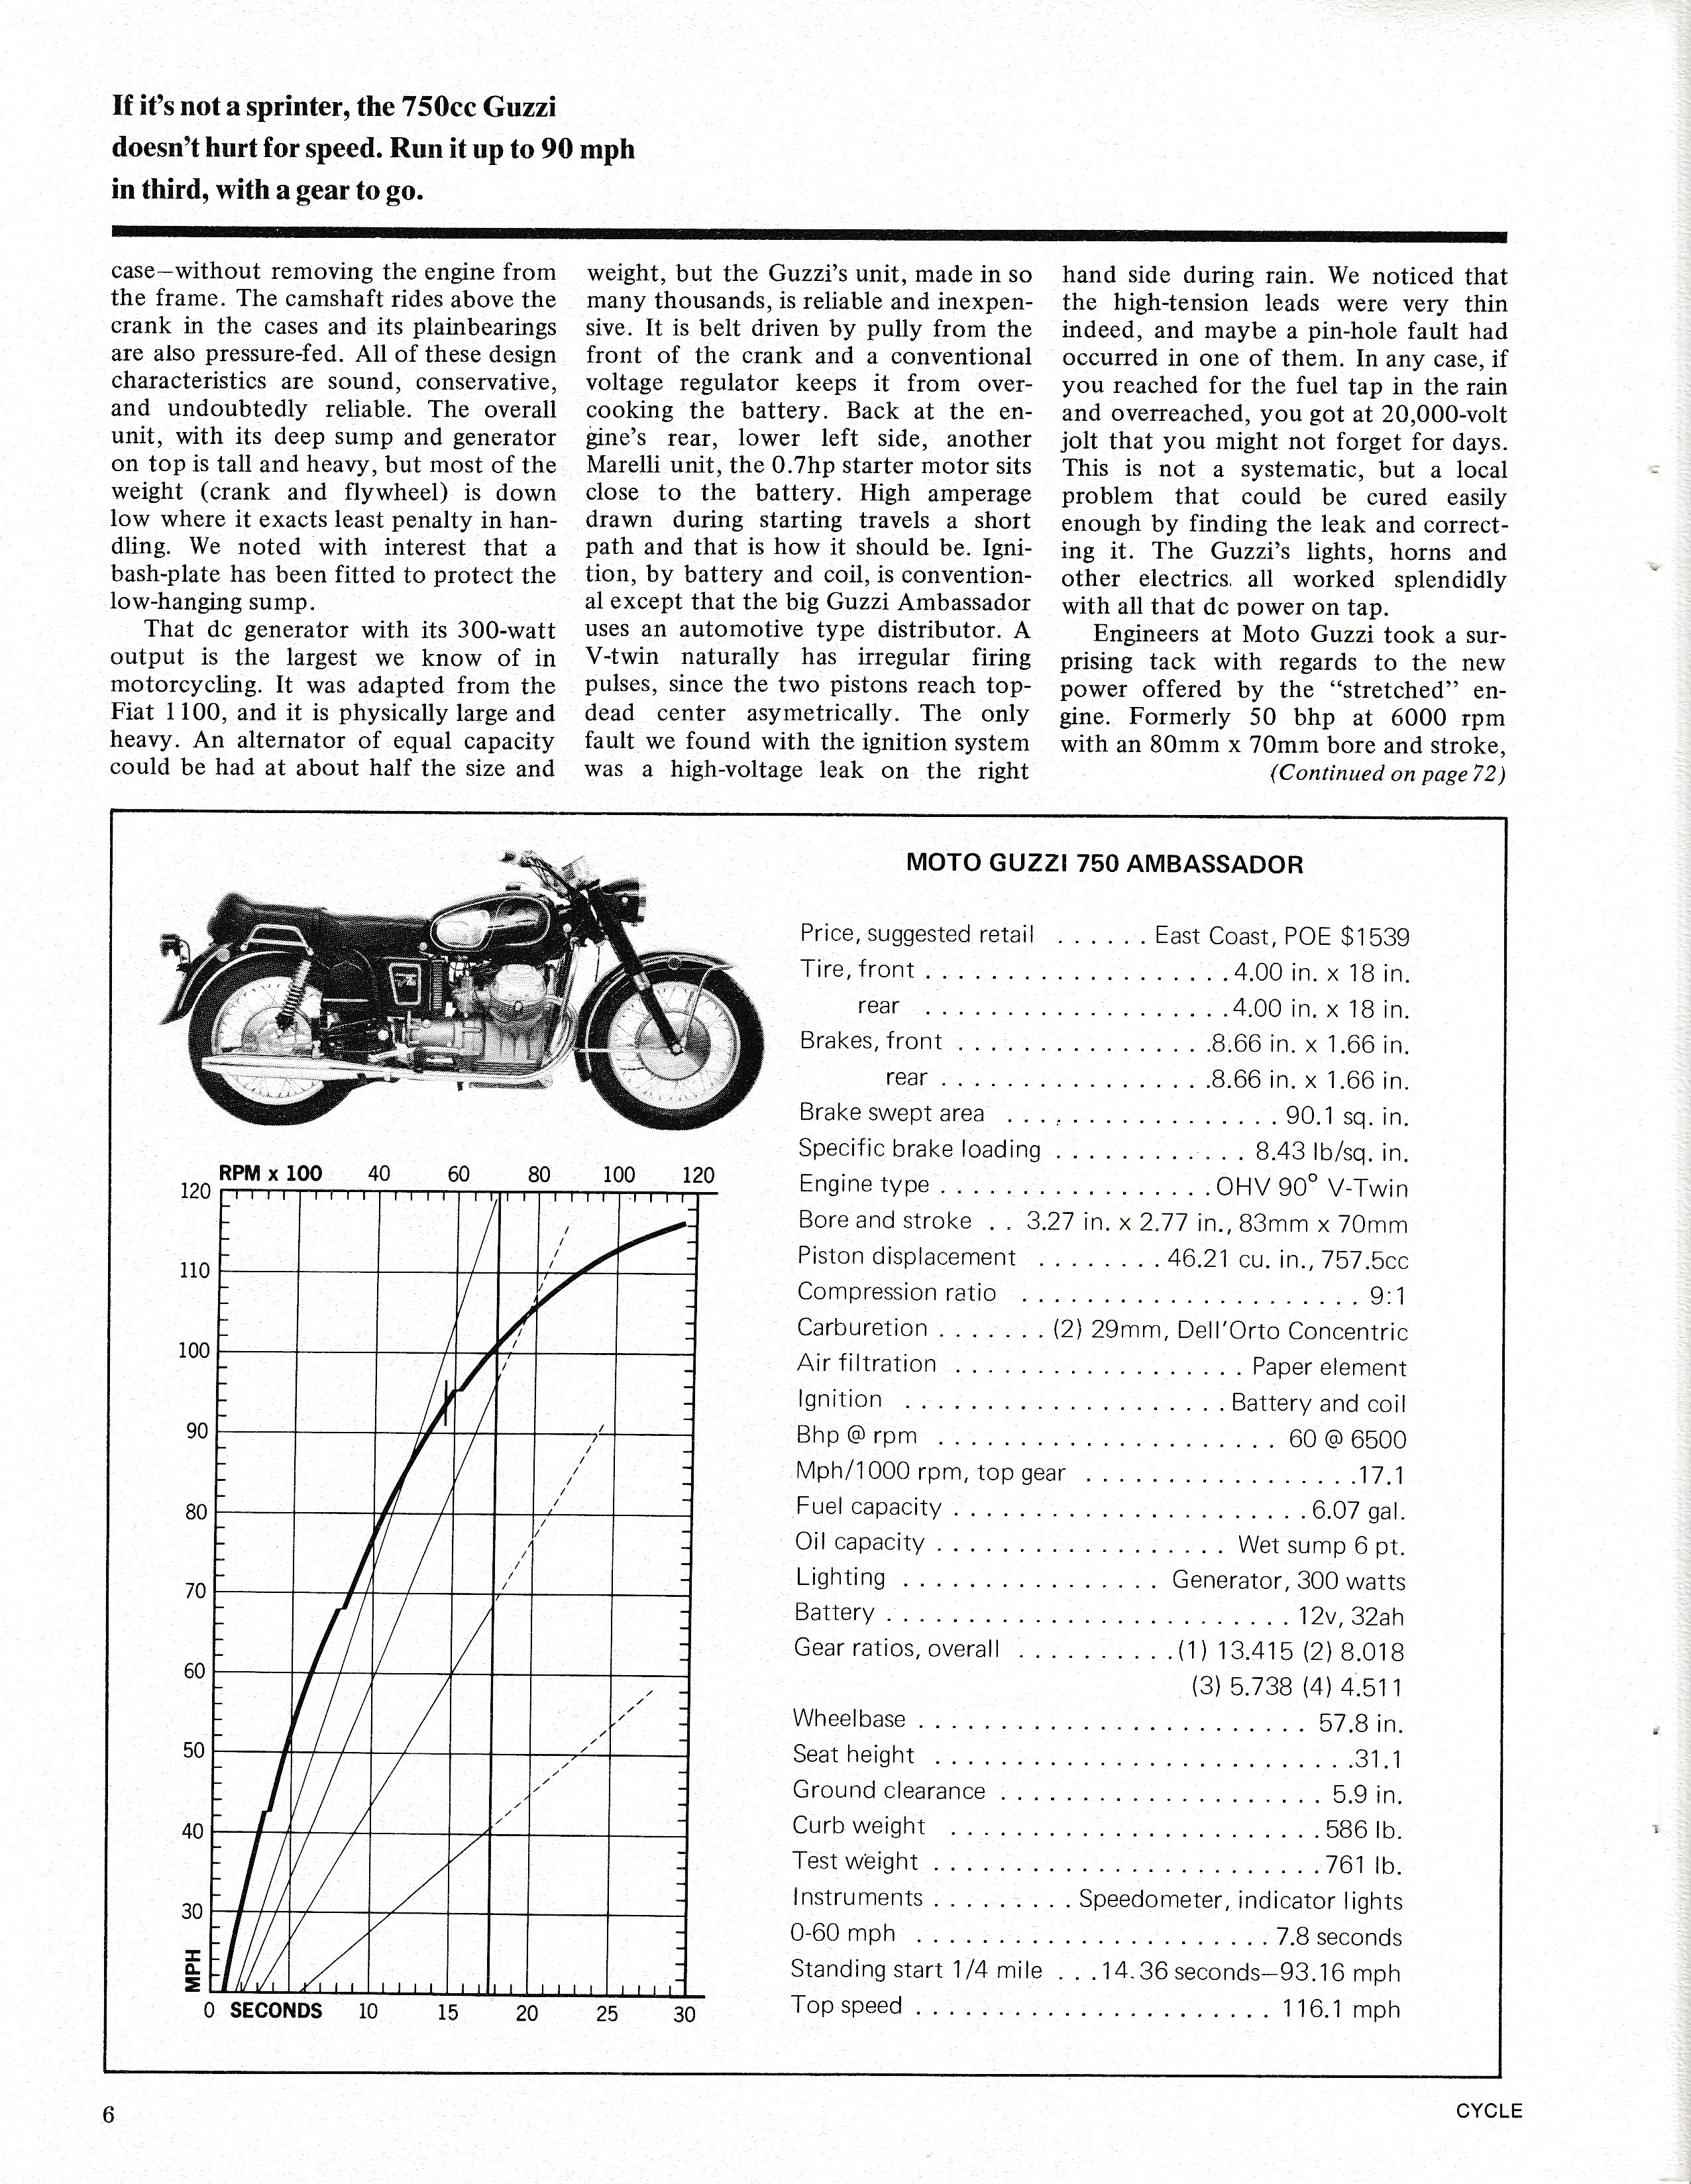 Moto Guzzi Ambassador factory brochure of magazine reviews, Page 6 of 16.